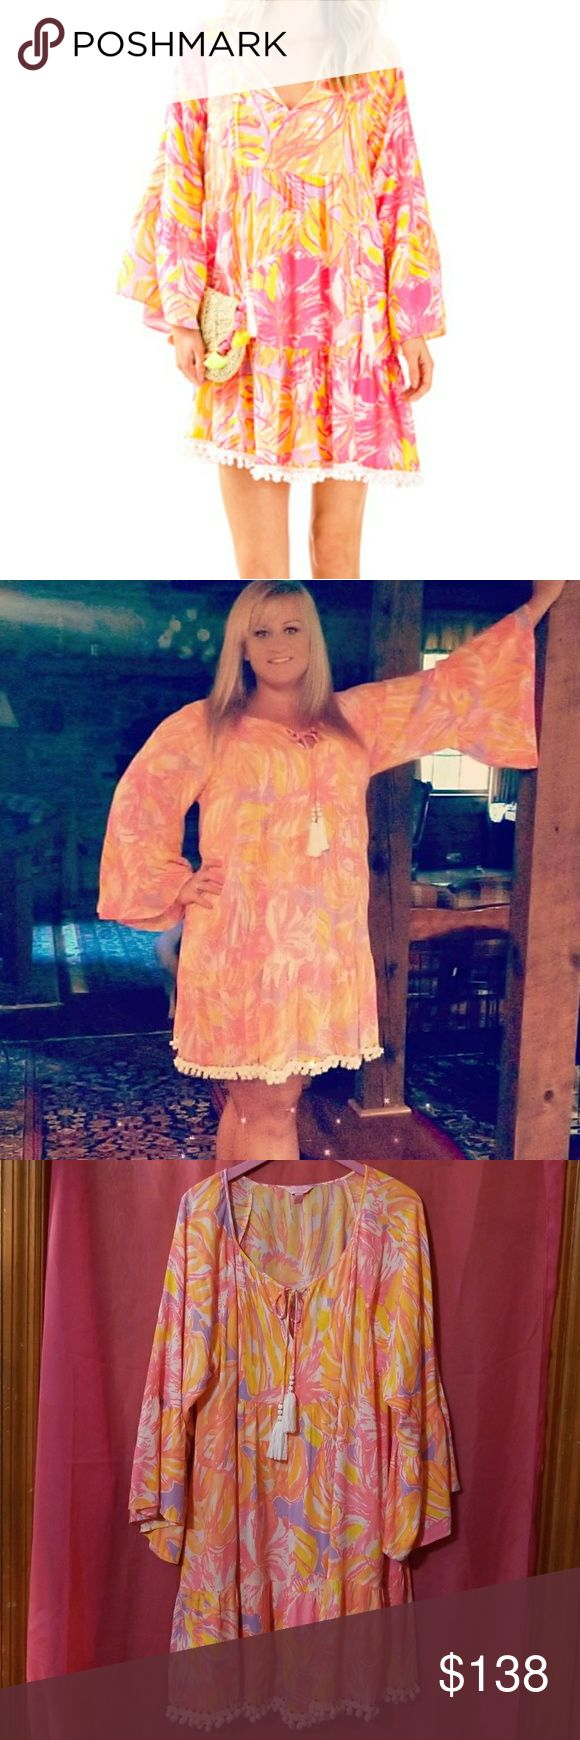 "Lilly Pulitzer Amisa tunic dress Pre-owned Multi sun Splashed  Notch Neck Tunic Dress With Bell Sleeves And Beaded Hemline With Pom Pom Details. 35 1/2"" From Top Of Shoulder To Hem. Length: Above The Knee. Crinkle Viscose Gauze (100% Rayon).  Gorgeous Dress!  Flattering on everyone! Some of the beads on the hemline are missing as shown in last 2 pictures Lilly Pulitzer Dresses Long Sleeve"